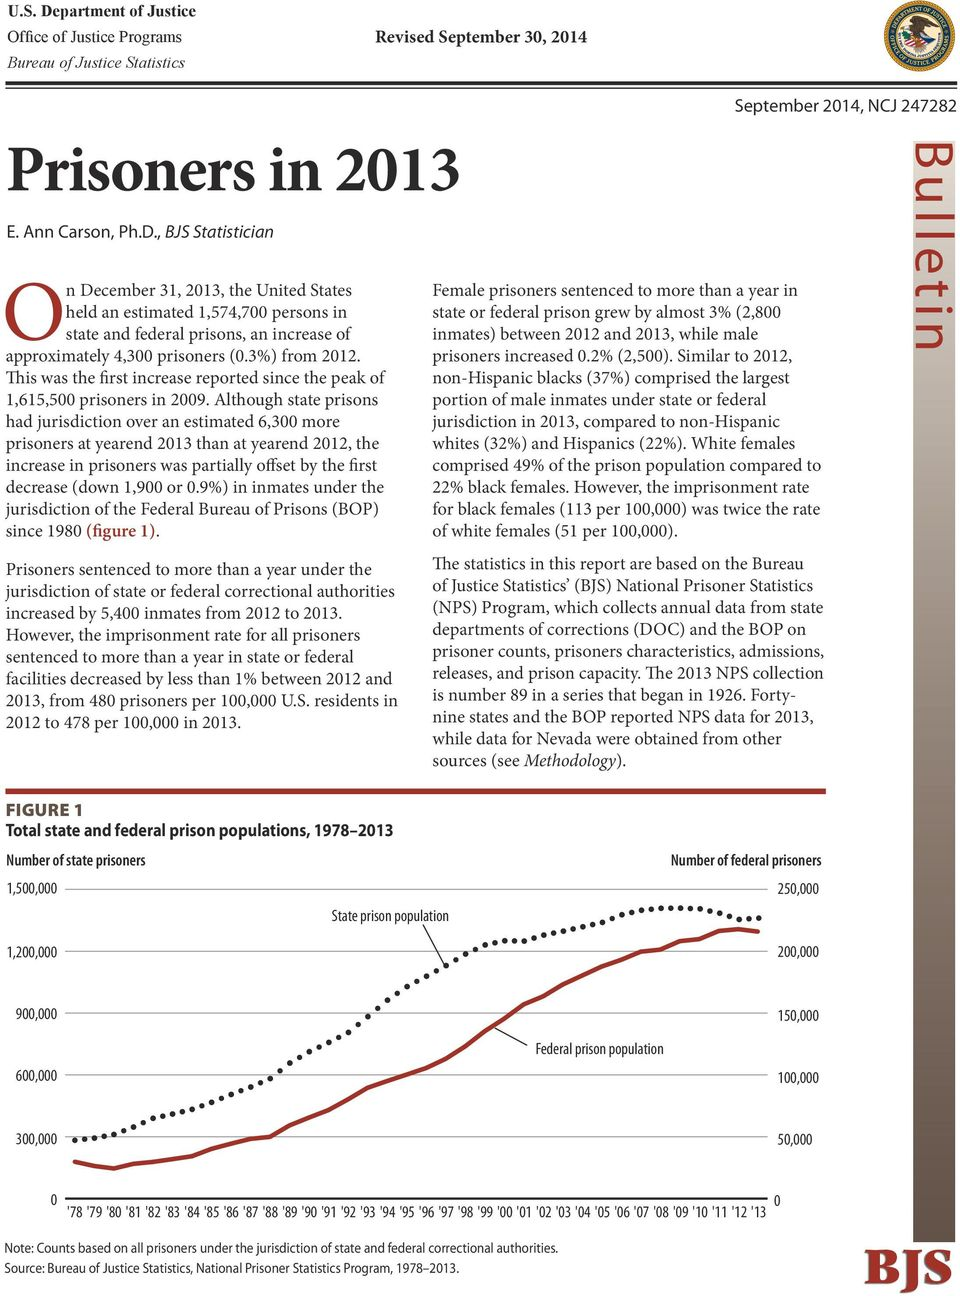 Although state prisons had jurisdiction over an estimated 6,300 more prisoners at yearend 2013 than at yearend 2012, the increase in prisoners was partially offset by the first decrease (down 1,900